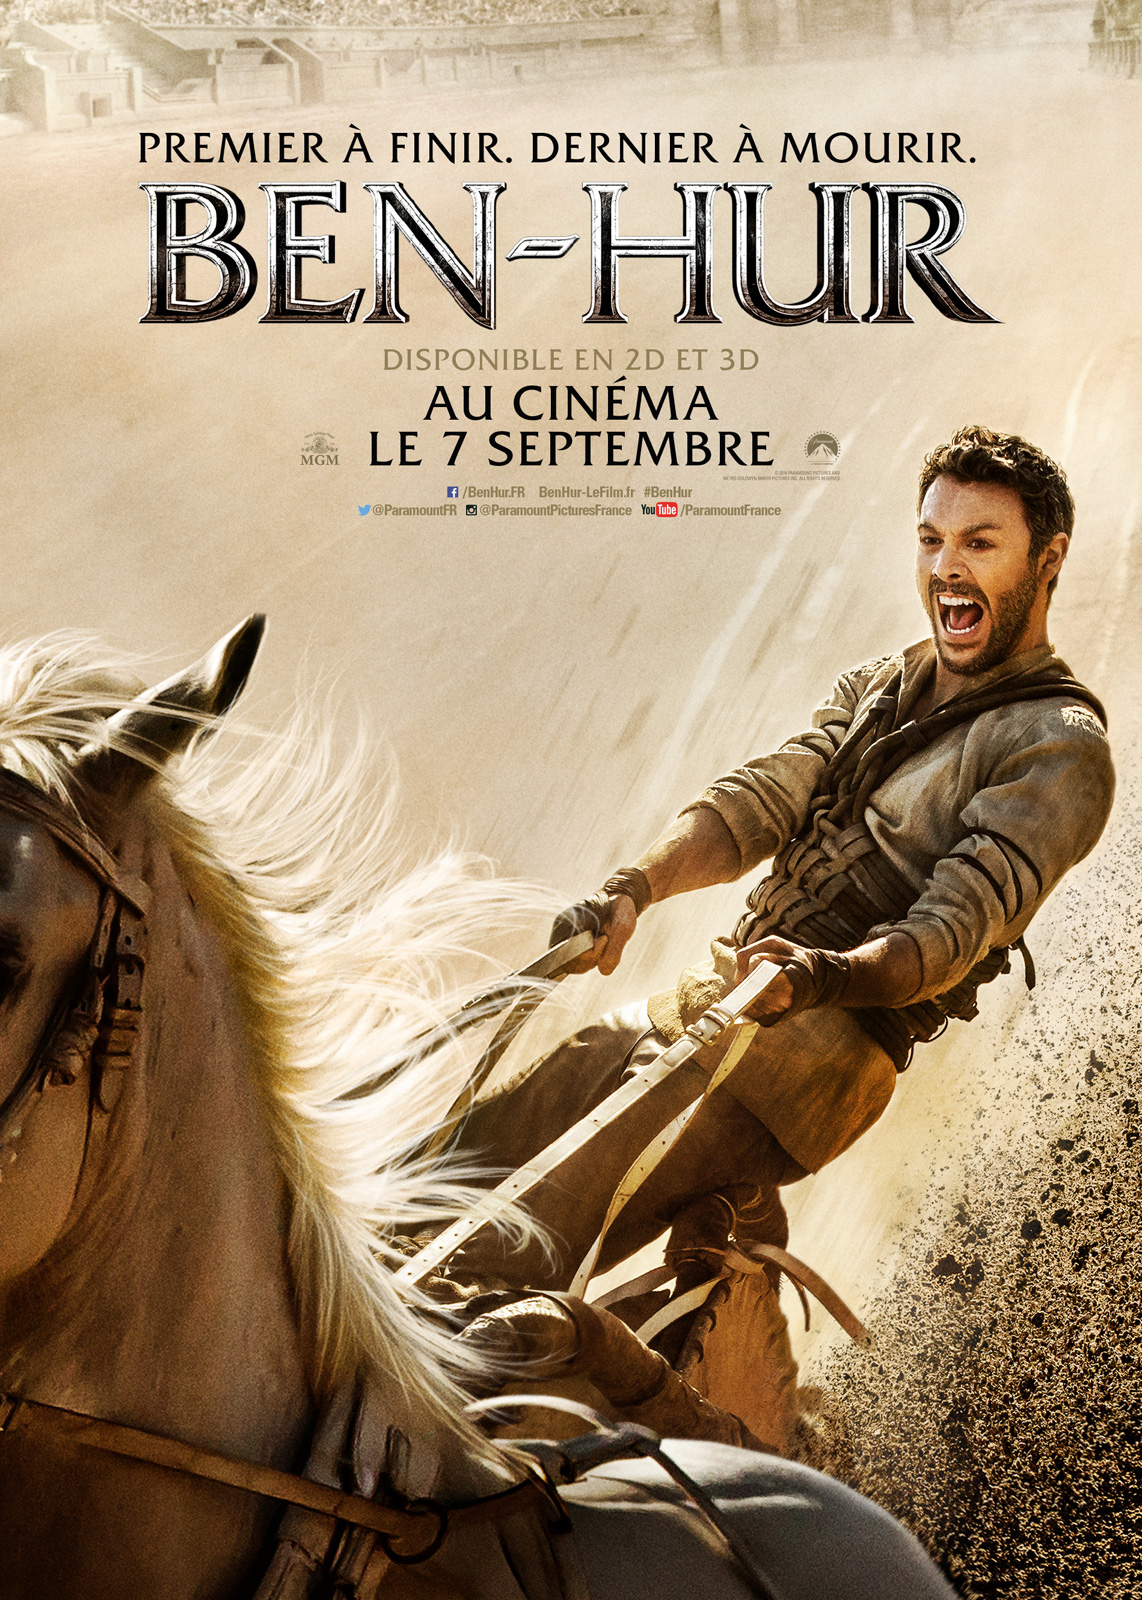 an analysis of the cinema of ben hur Ben-hur the film score (part one) the following track-by-track analysis provides a general overview of ben-hur's story and score more detailed analyses and additional information can be found in other sources—particularly ralph erkelenz's exhaustive study,.